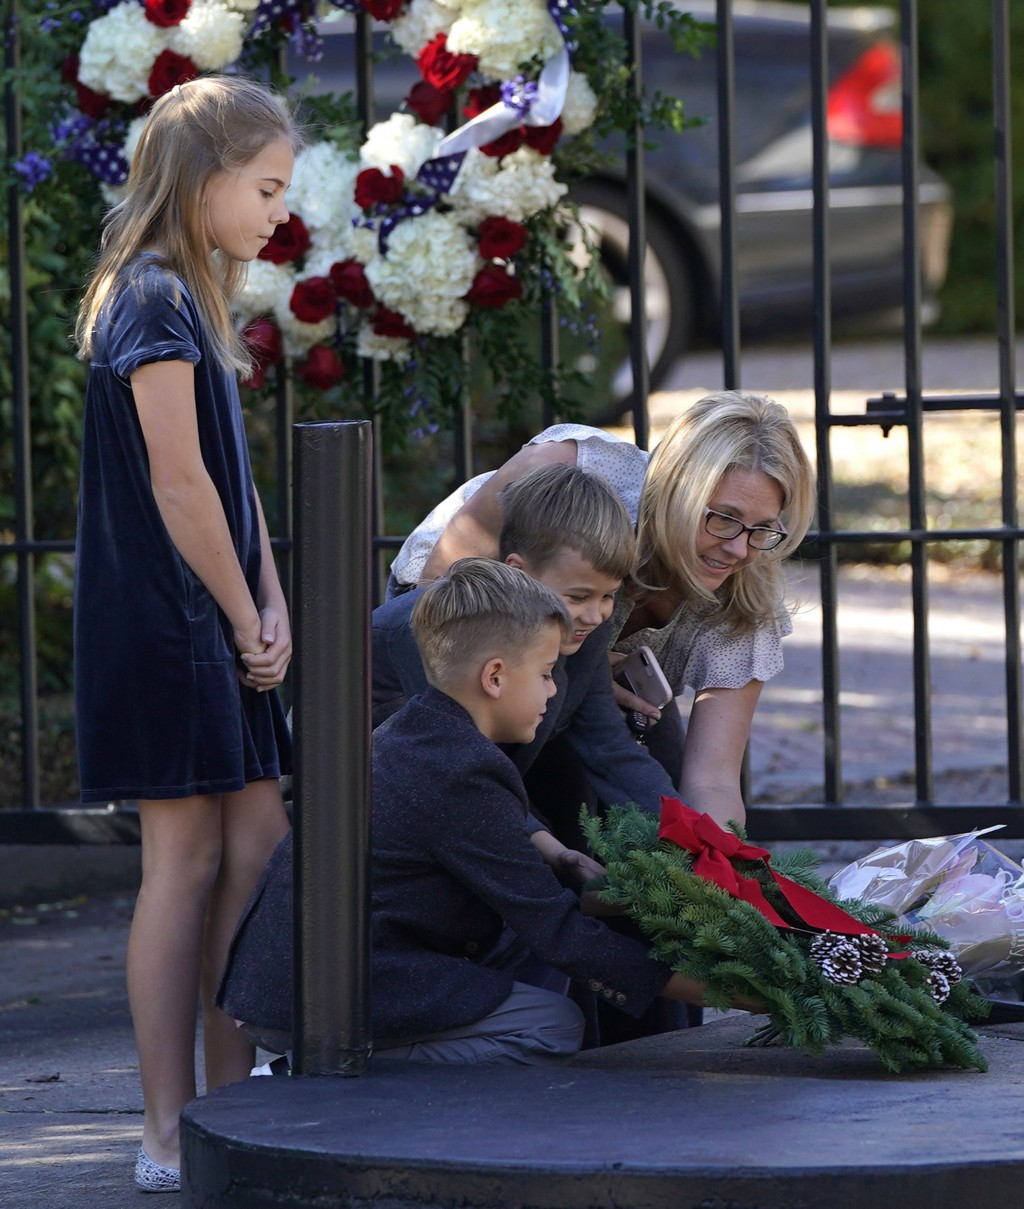 Tiffany Utterson, right, and her children, from left to right, Ella, 11, Ian, 10 and Owen, 8, place a wreath outside the gated community entrance to t...